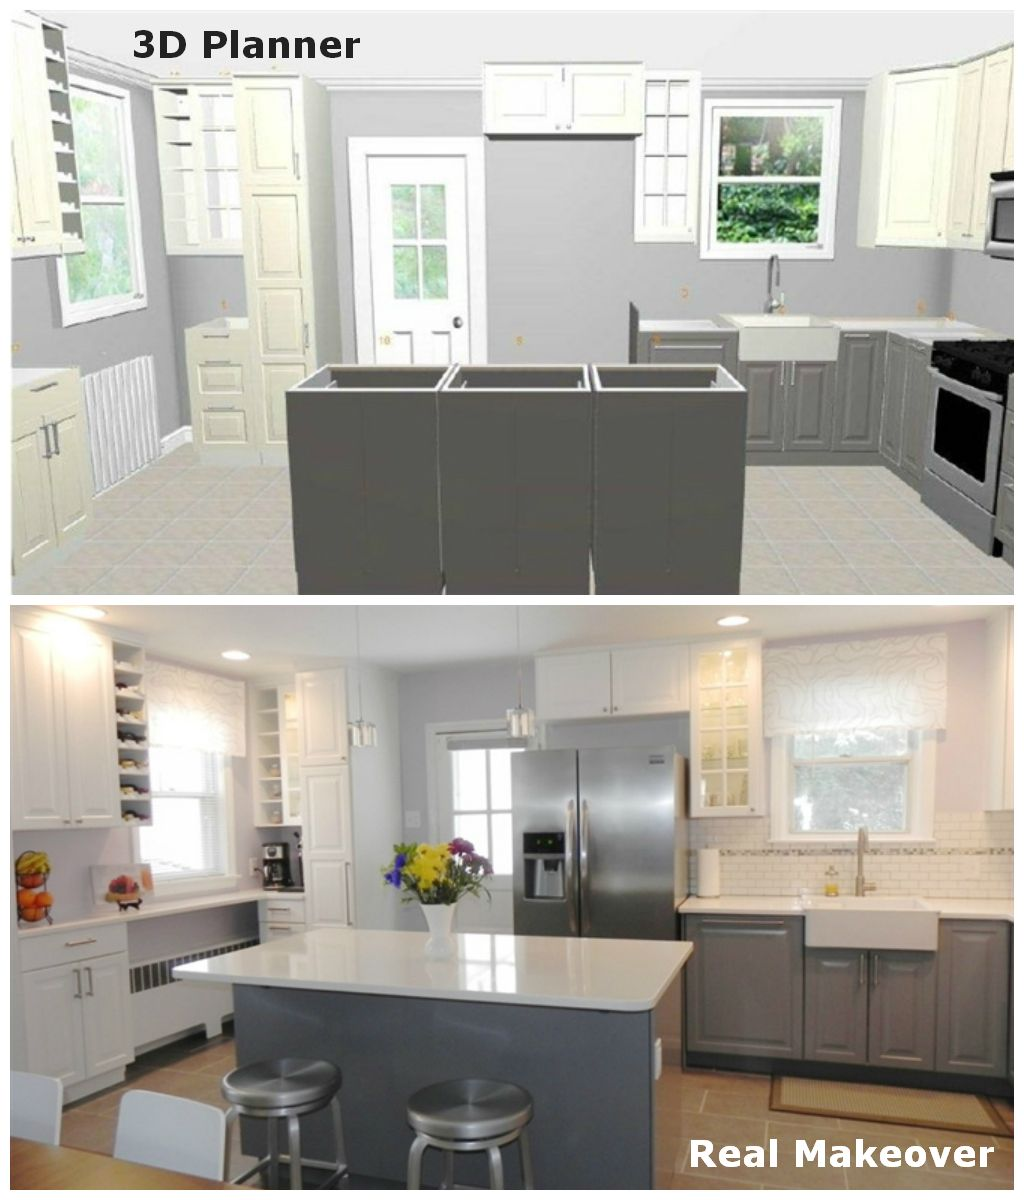 This ikea blogger created her dream kitchen in ikea 3d for What are ikea kitchen cabinets made of